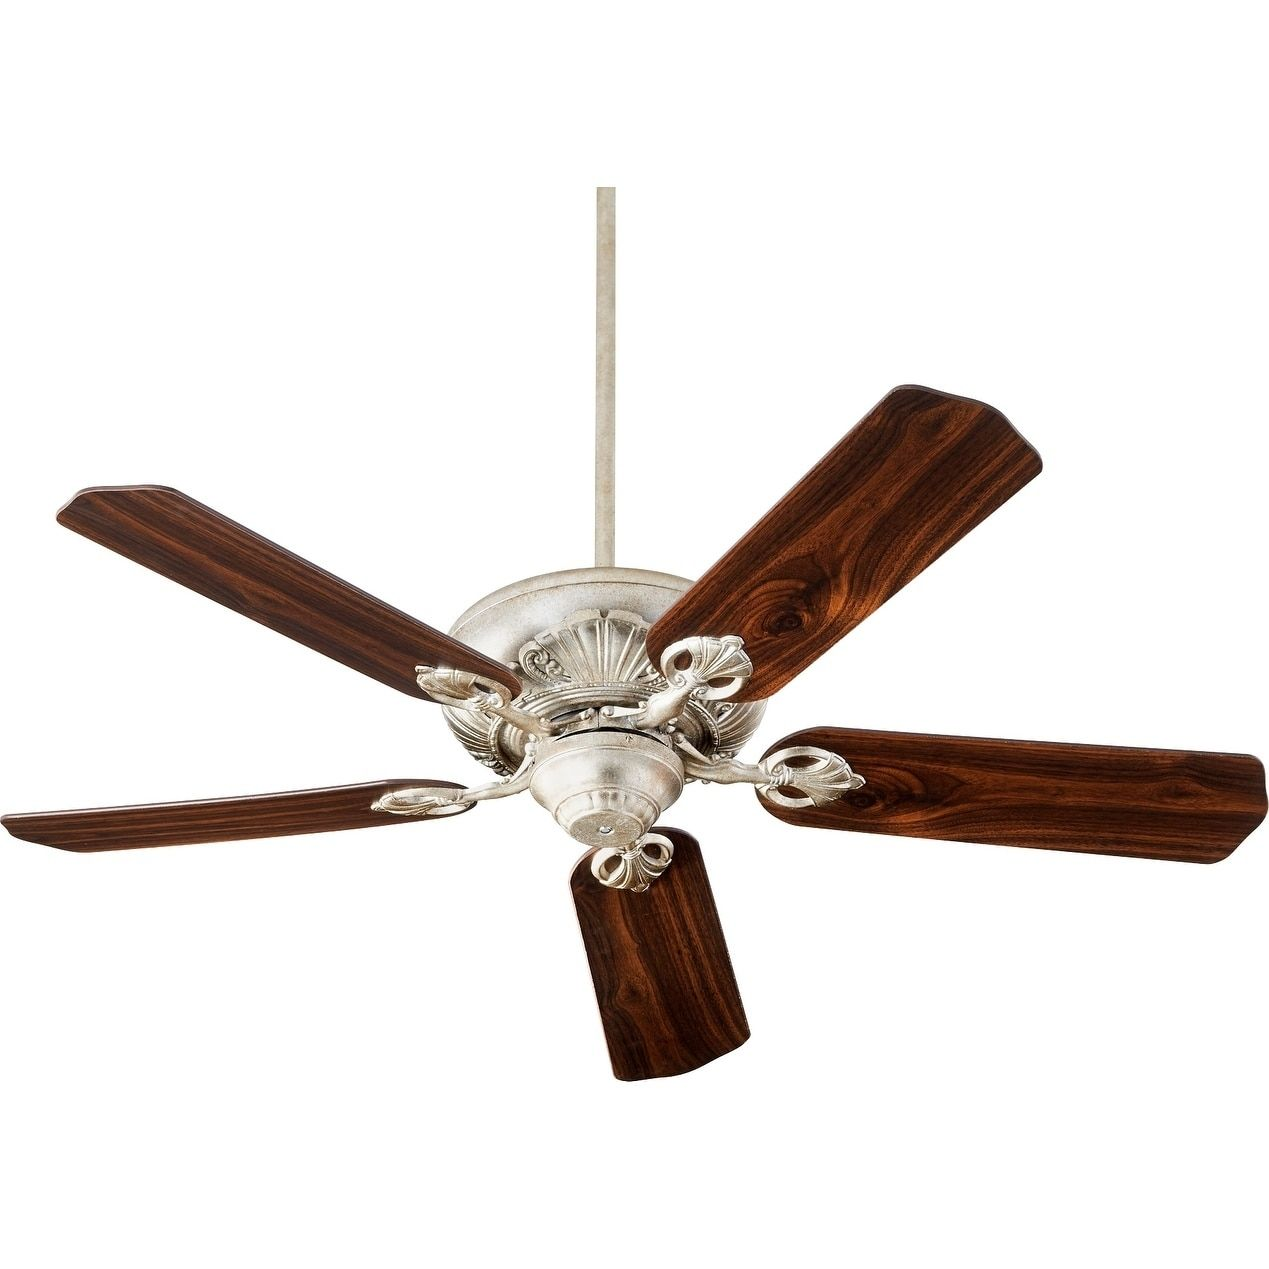 fan leaf fans palm home wooden of lights result awesome image decor best ceiling australia with ceilings for stunning